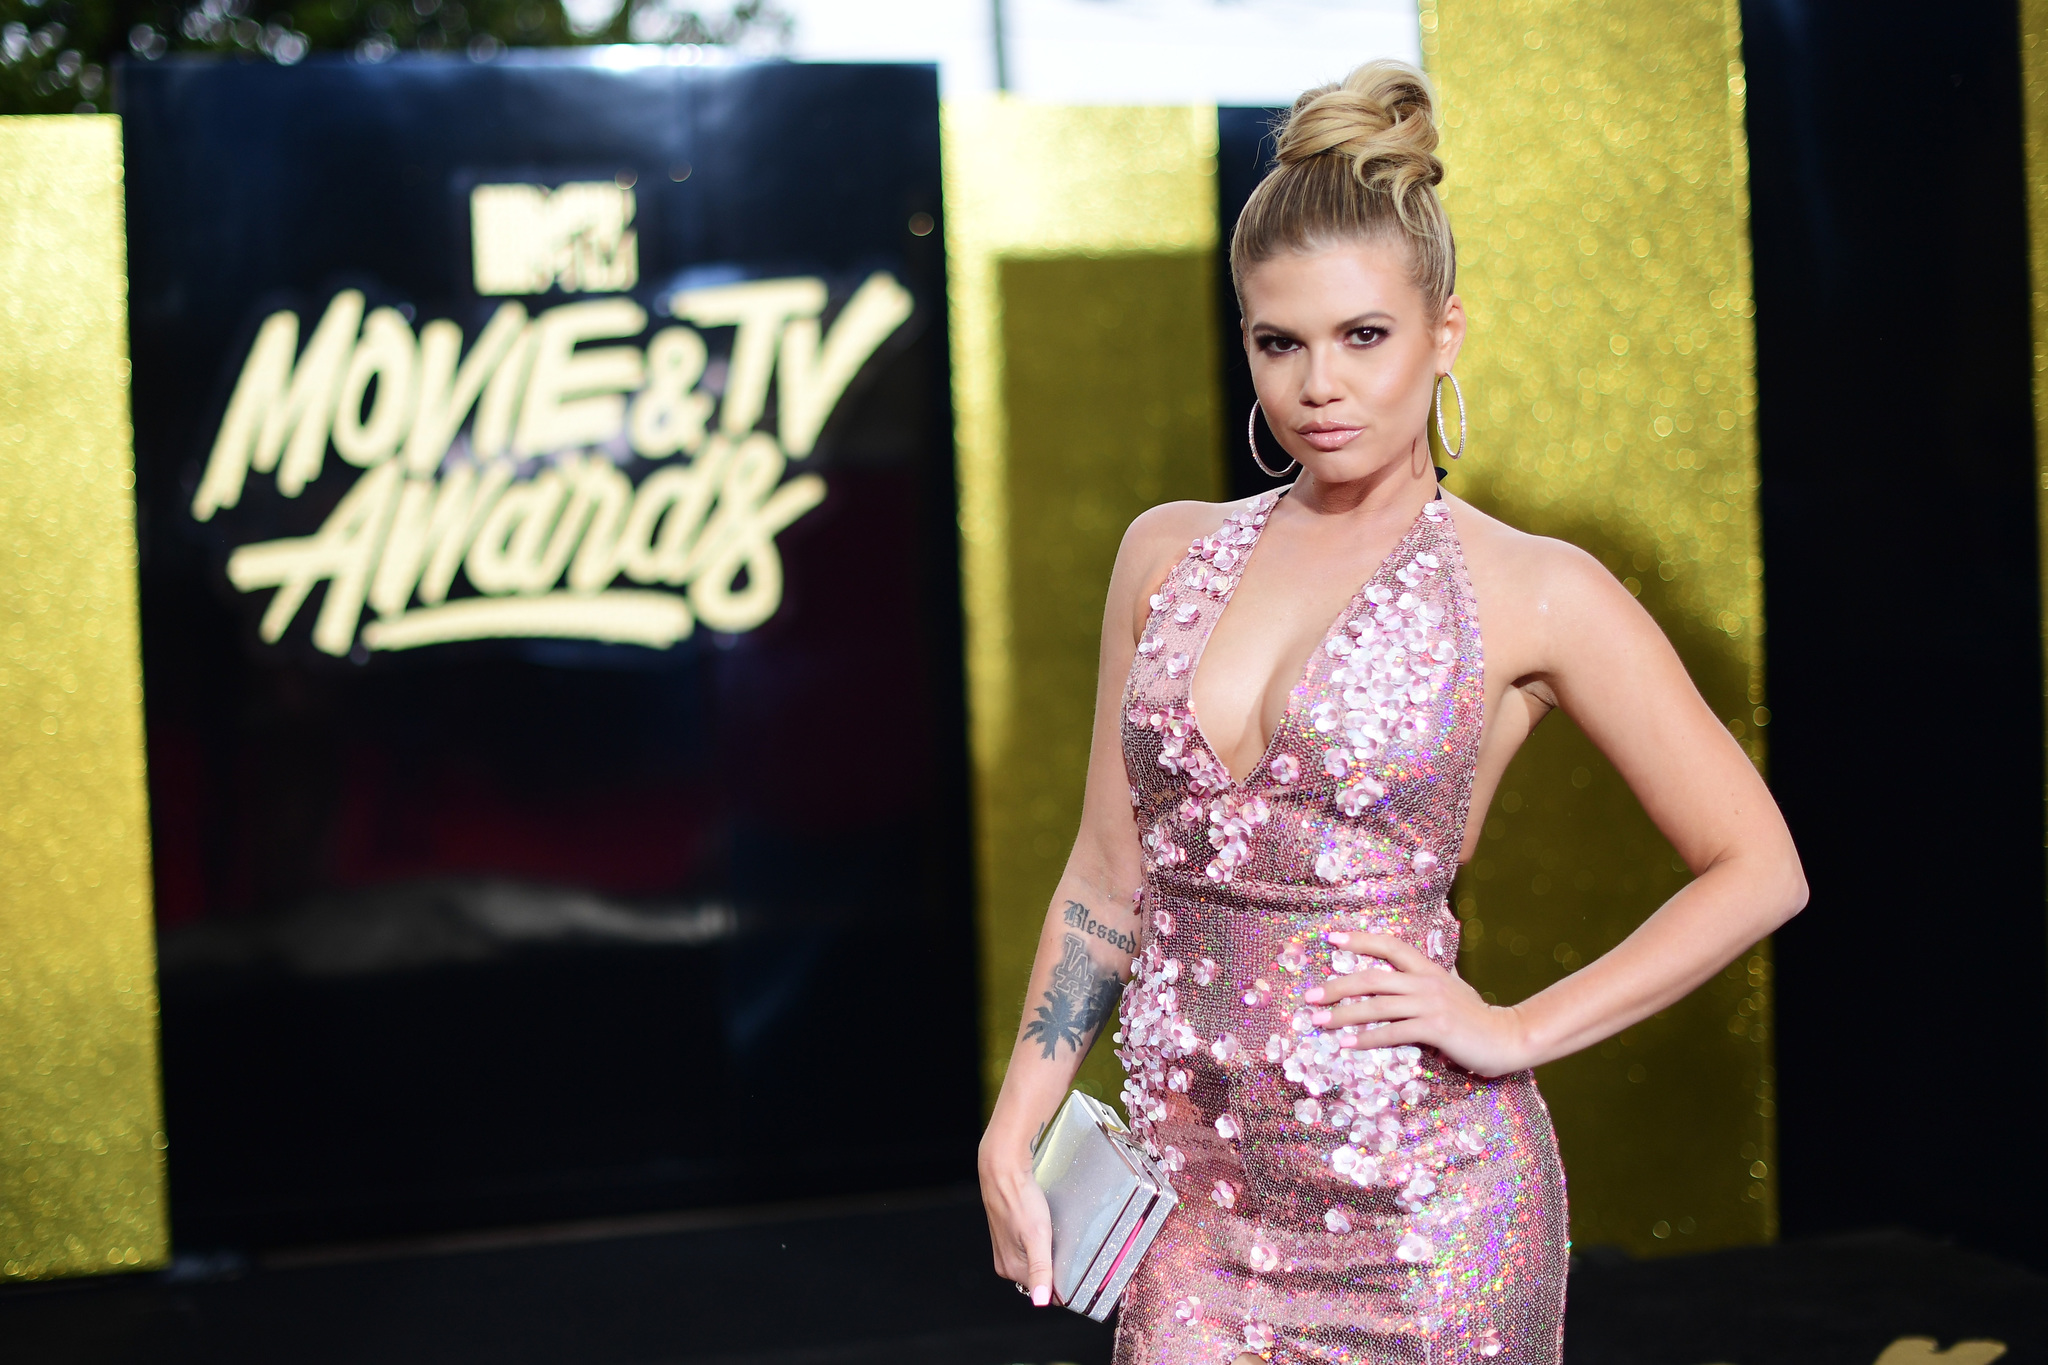 Chanel West Coast Imdb